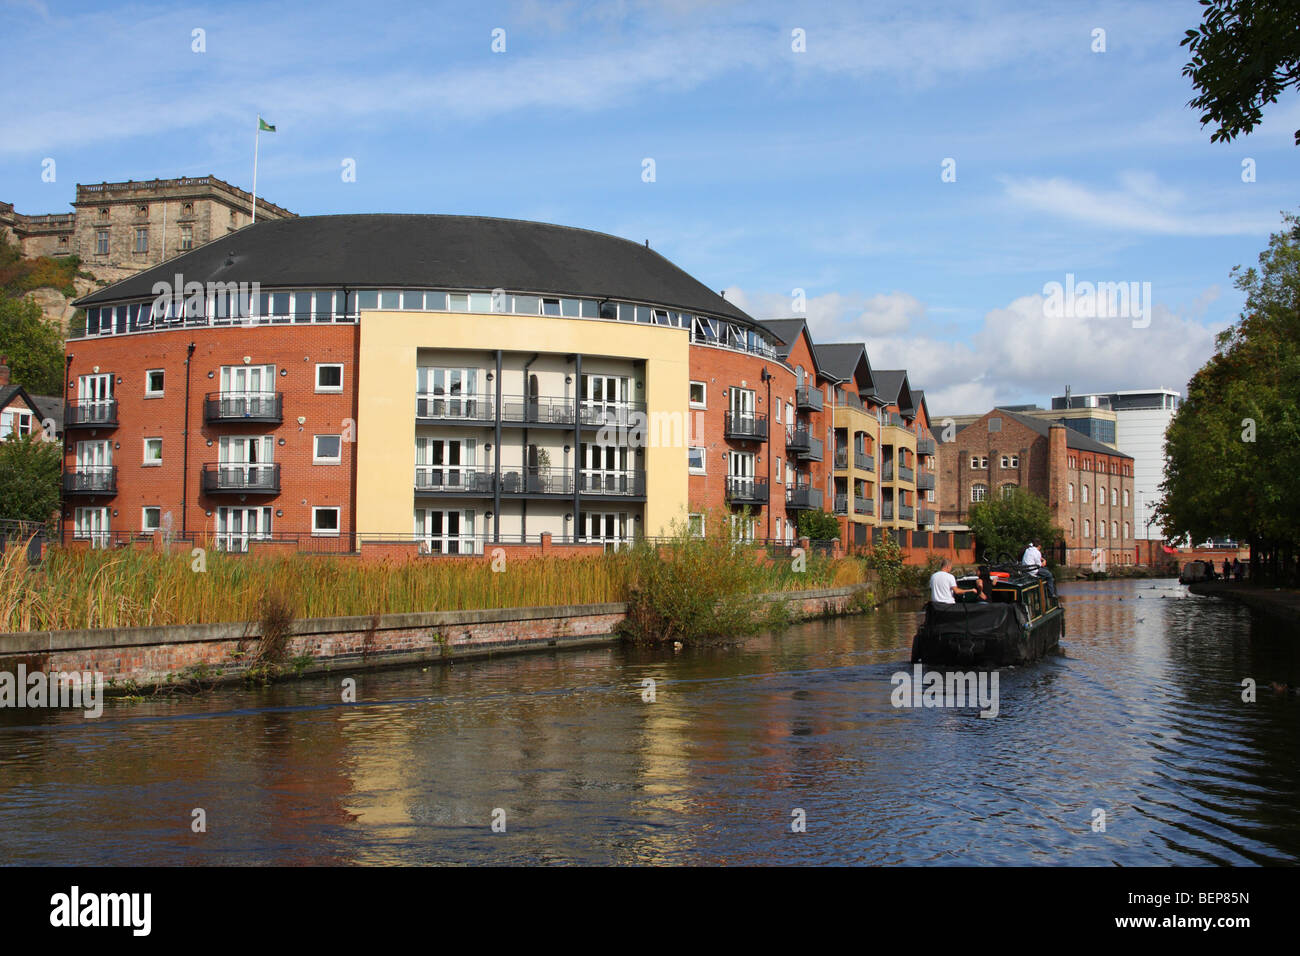 A narrowboat  on a canal in Nottingham, England, U.K. - Stock Image